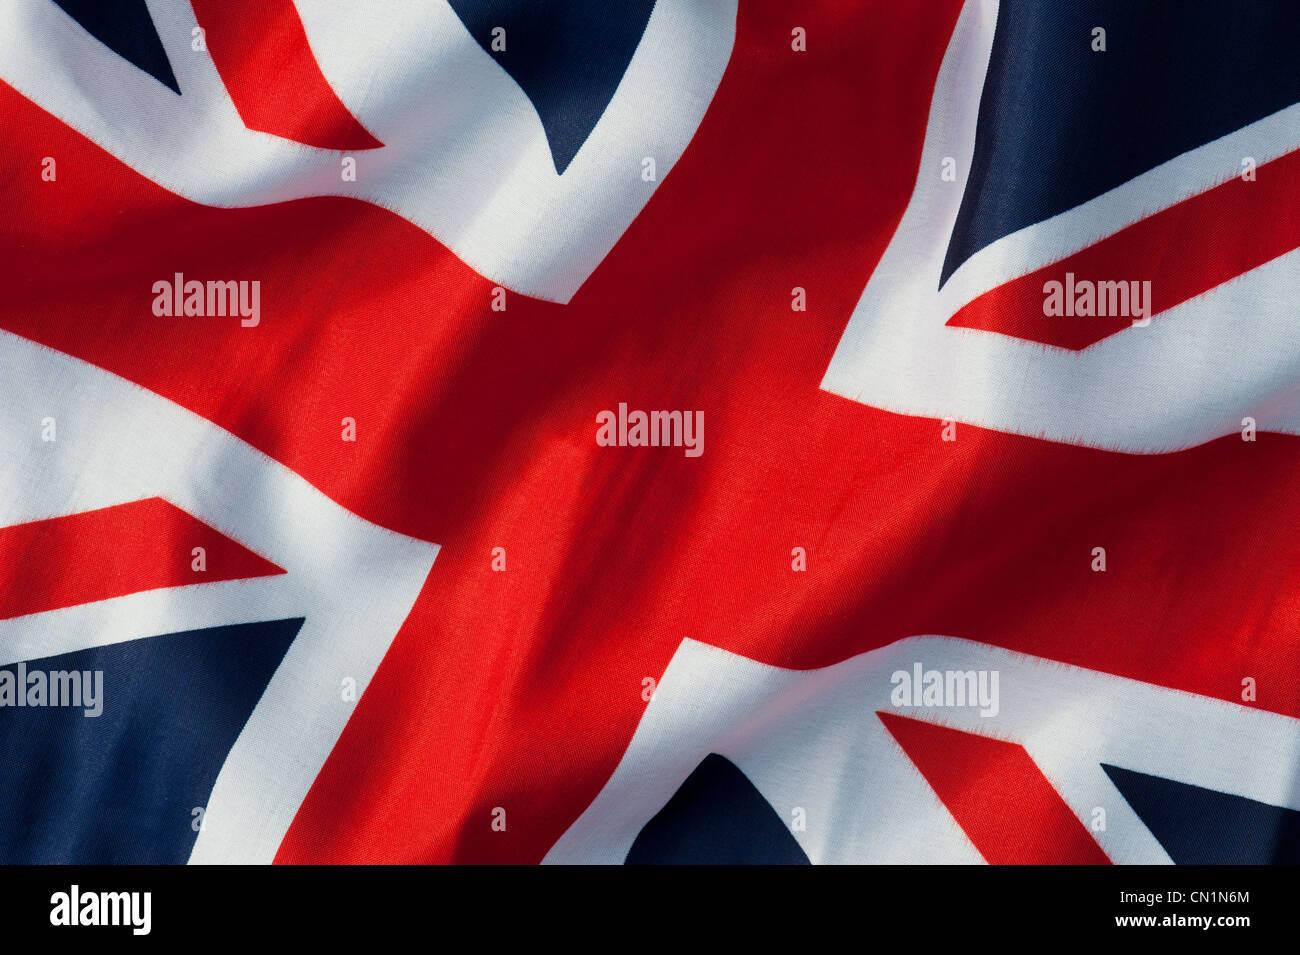 Union Jack flag - Stock Image